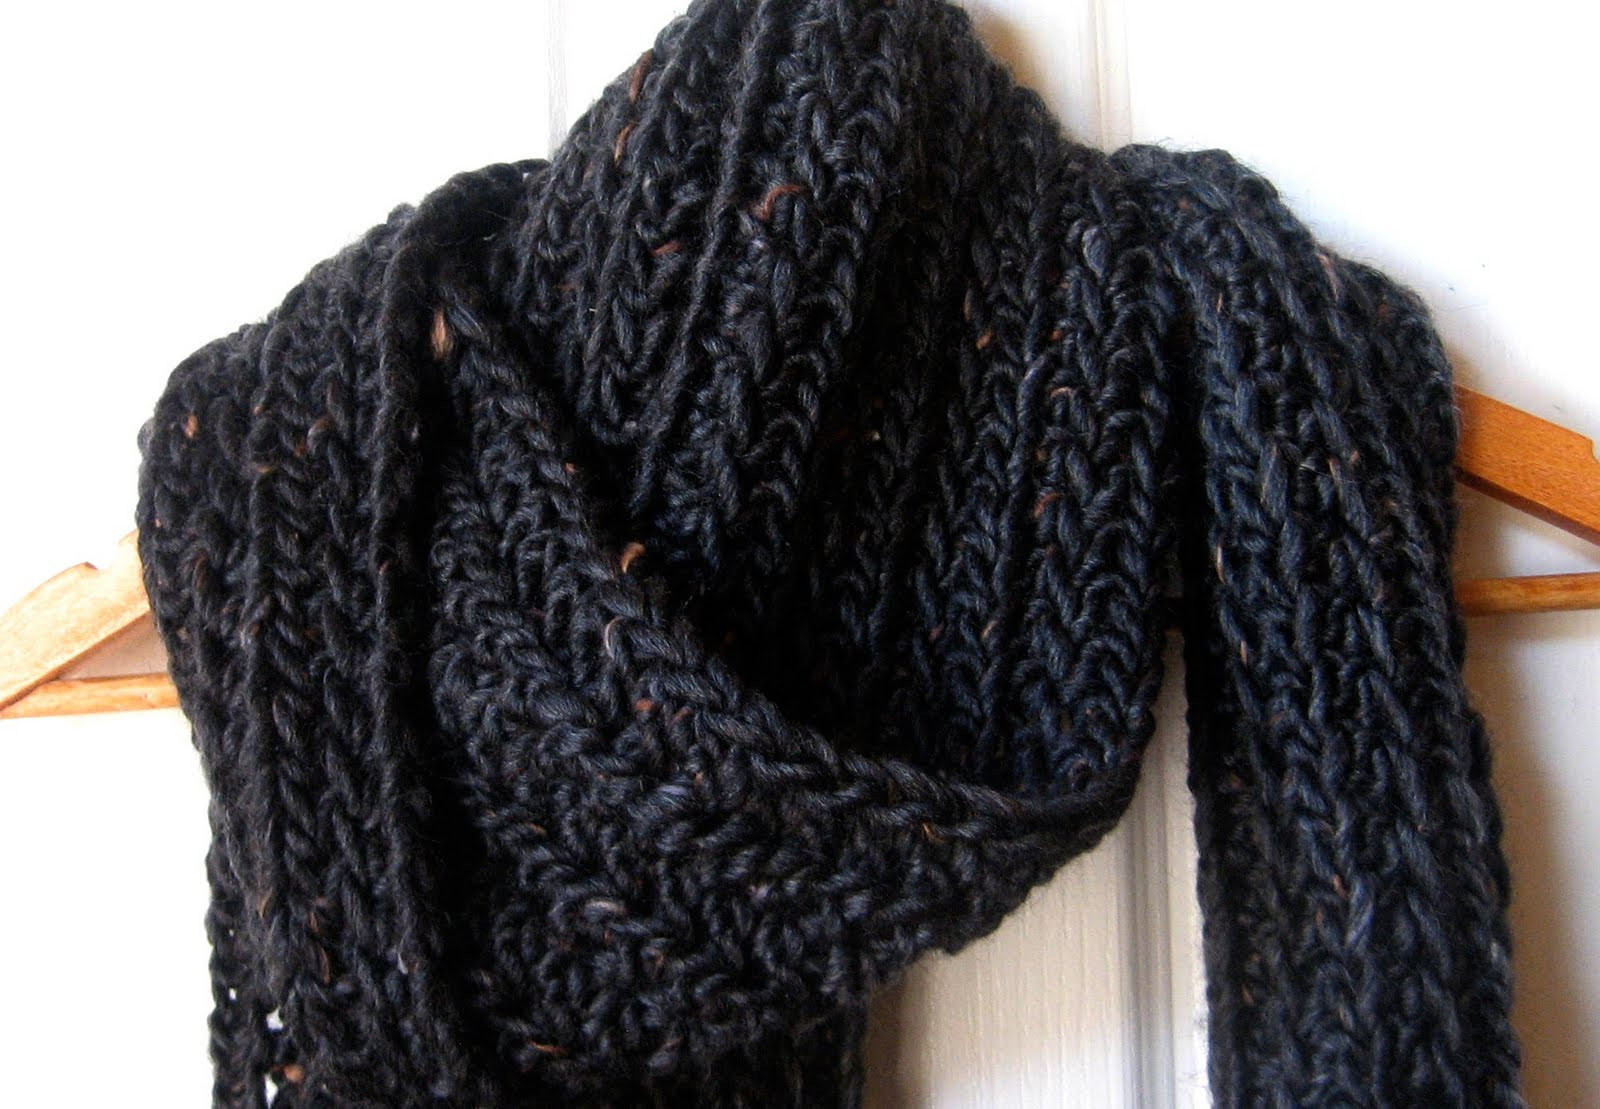 New Crochet A Scarf Youtube Crochet Scarf Youtube Of Attractive 40 Pictures Crochet Scarf Youtube